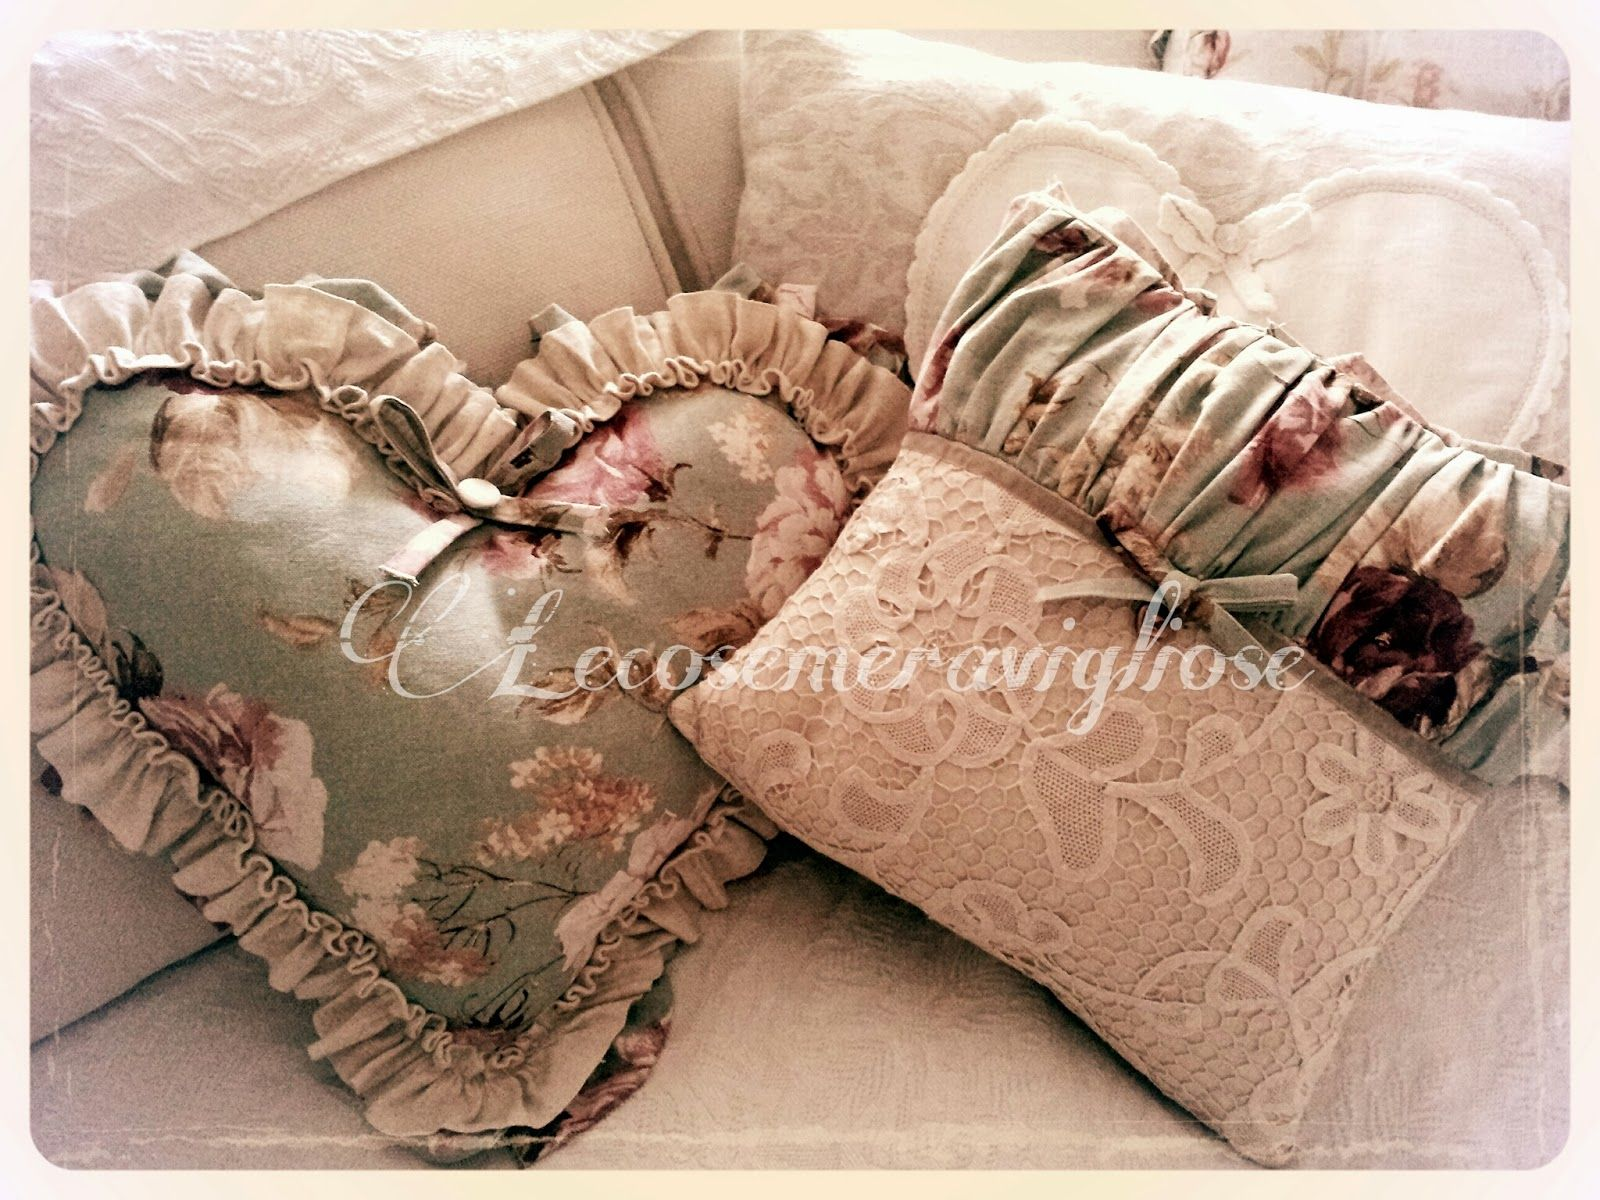 Tende Country Shabby : Lecosemeravigliose shabby e country chic passions tende cuscini